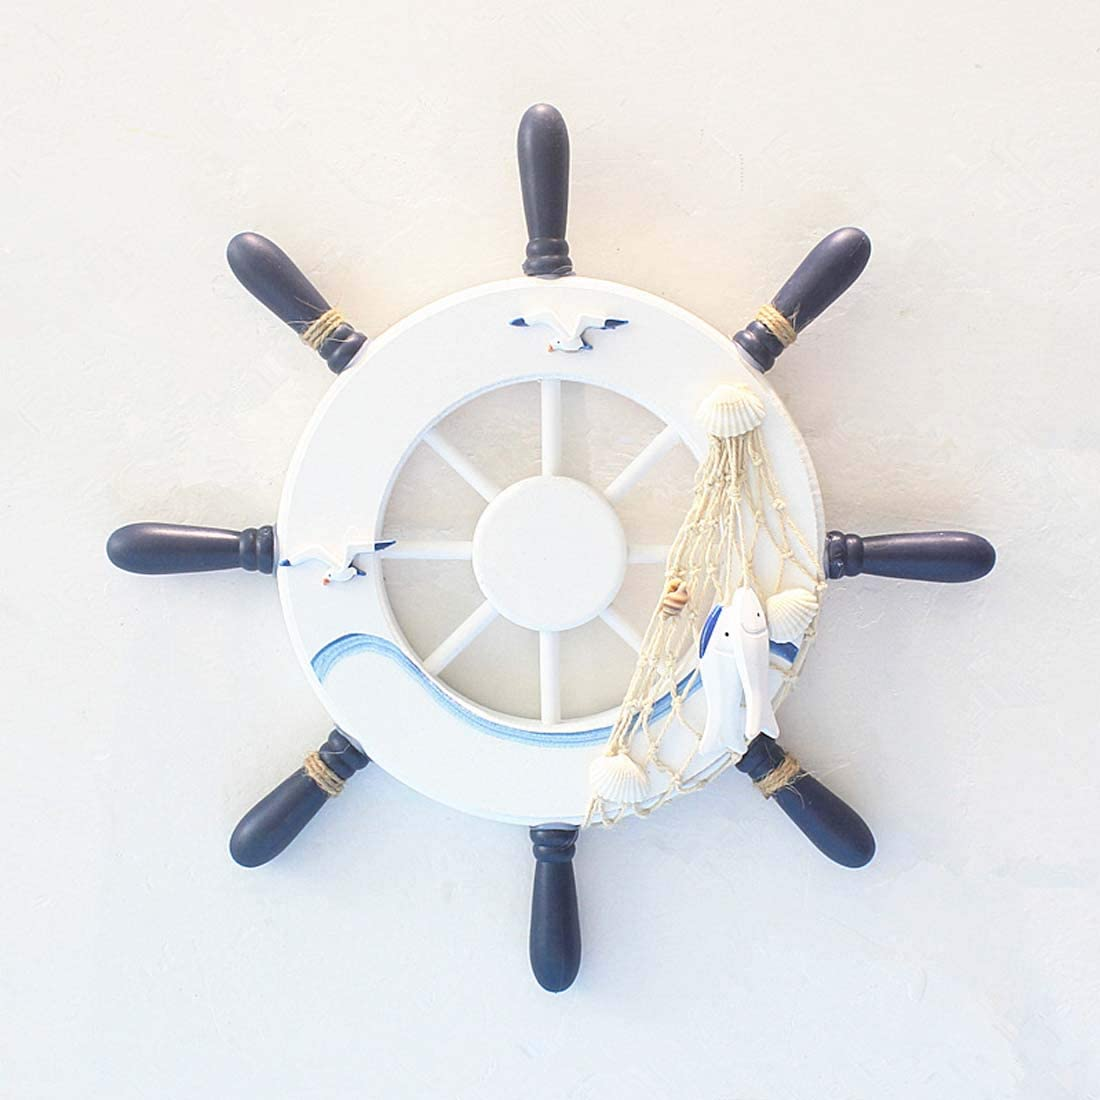 """Nautical Mediterranean Handcrafted Wooden Ship Wheel Pirate Decor- Ships Wheel for Home,and Wall Hanging Decorative Boat Accessory for Bedroom/Bathroom/Guest Room(Blue and White,12.6""""X 12.6"""")"""